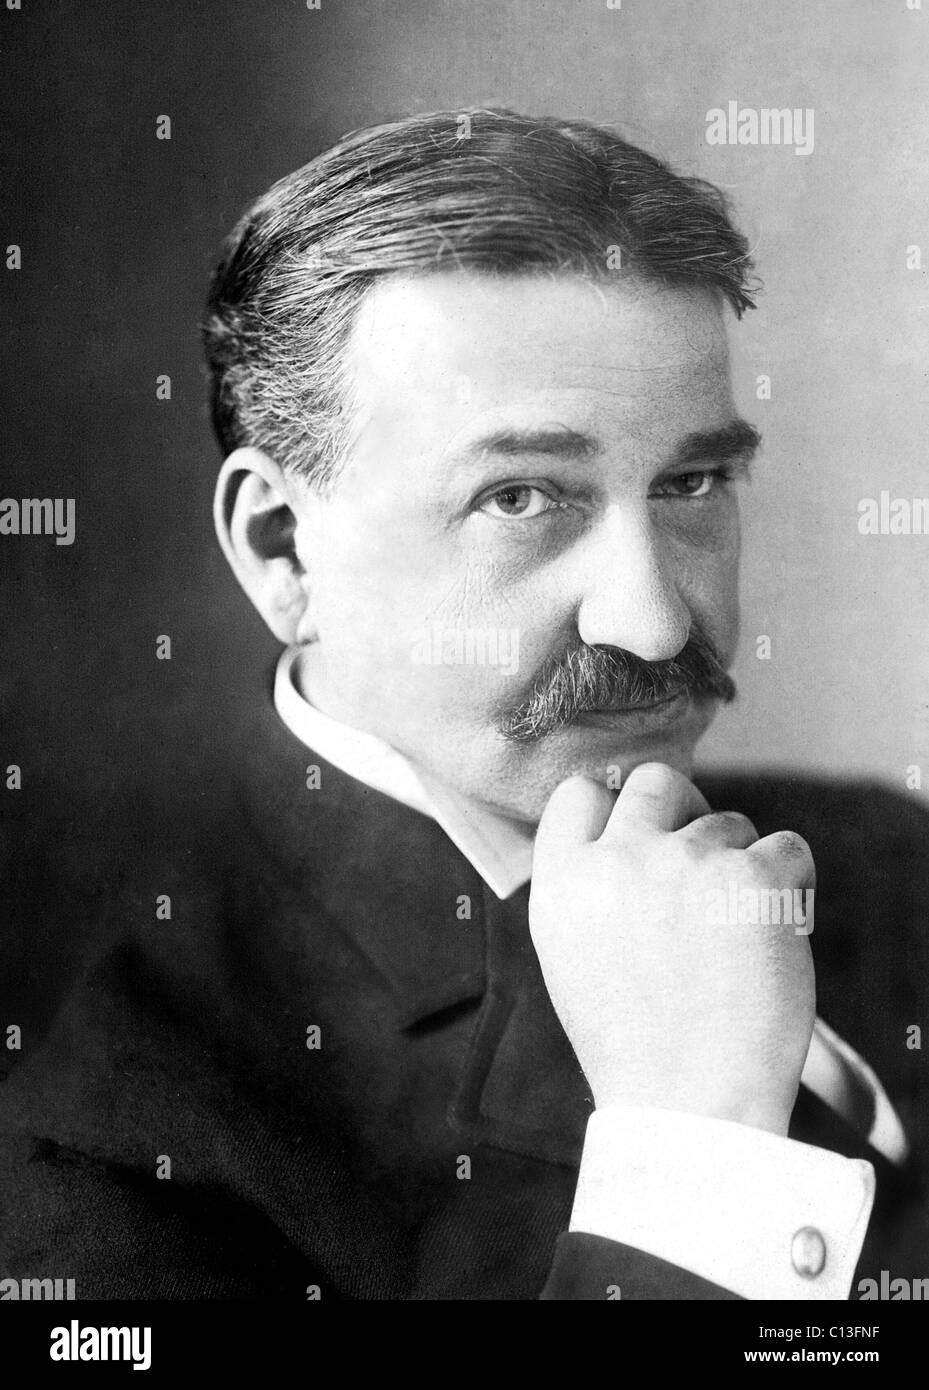 L. FRANK BAUM, author of the original novel, 'The Wizard of Oz', photo by Dana Hull. 1908 - Stock Image